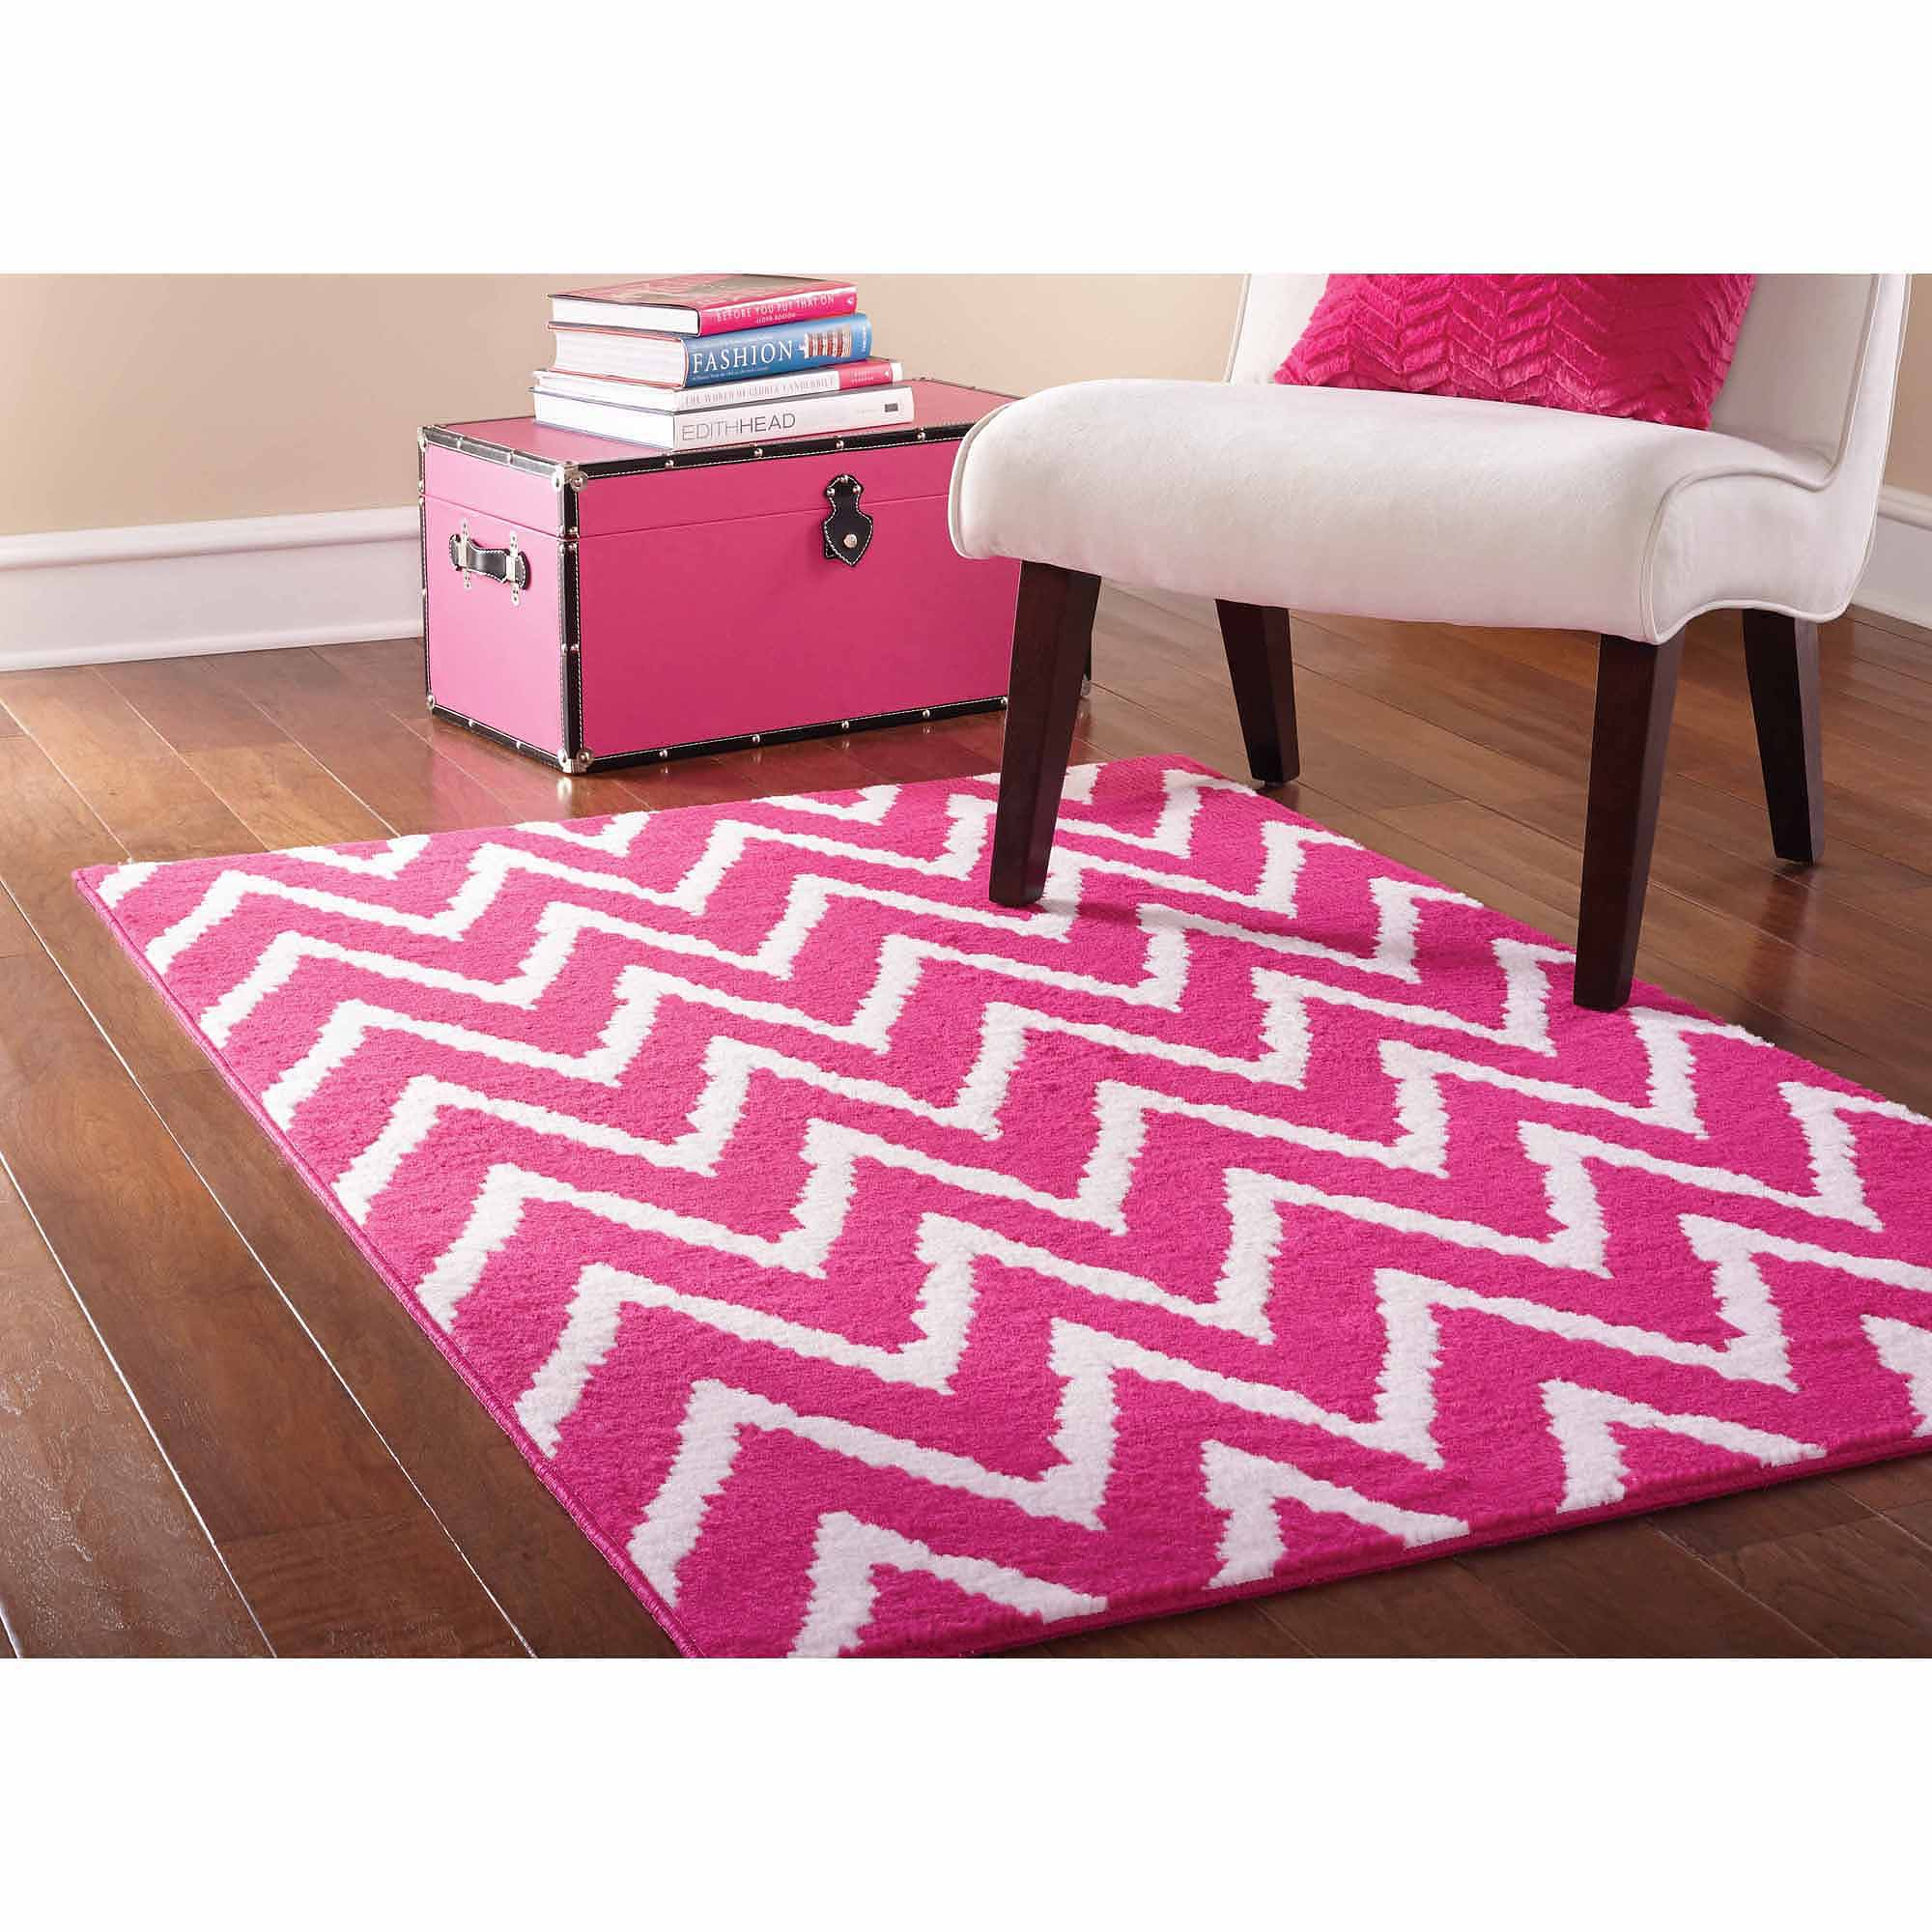 kids girls pink rug for bedroom playroom girl room modern 12847 | 0ba0e786 befa 406d 86a8 49be6a973470 1 300576d38076e3d76cd655362e0b9e89